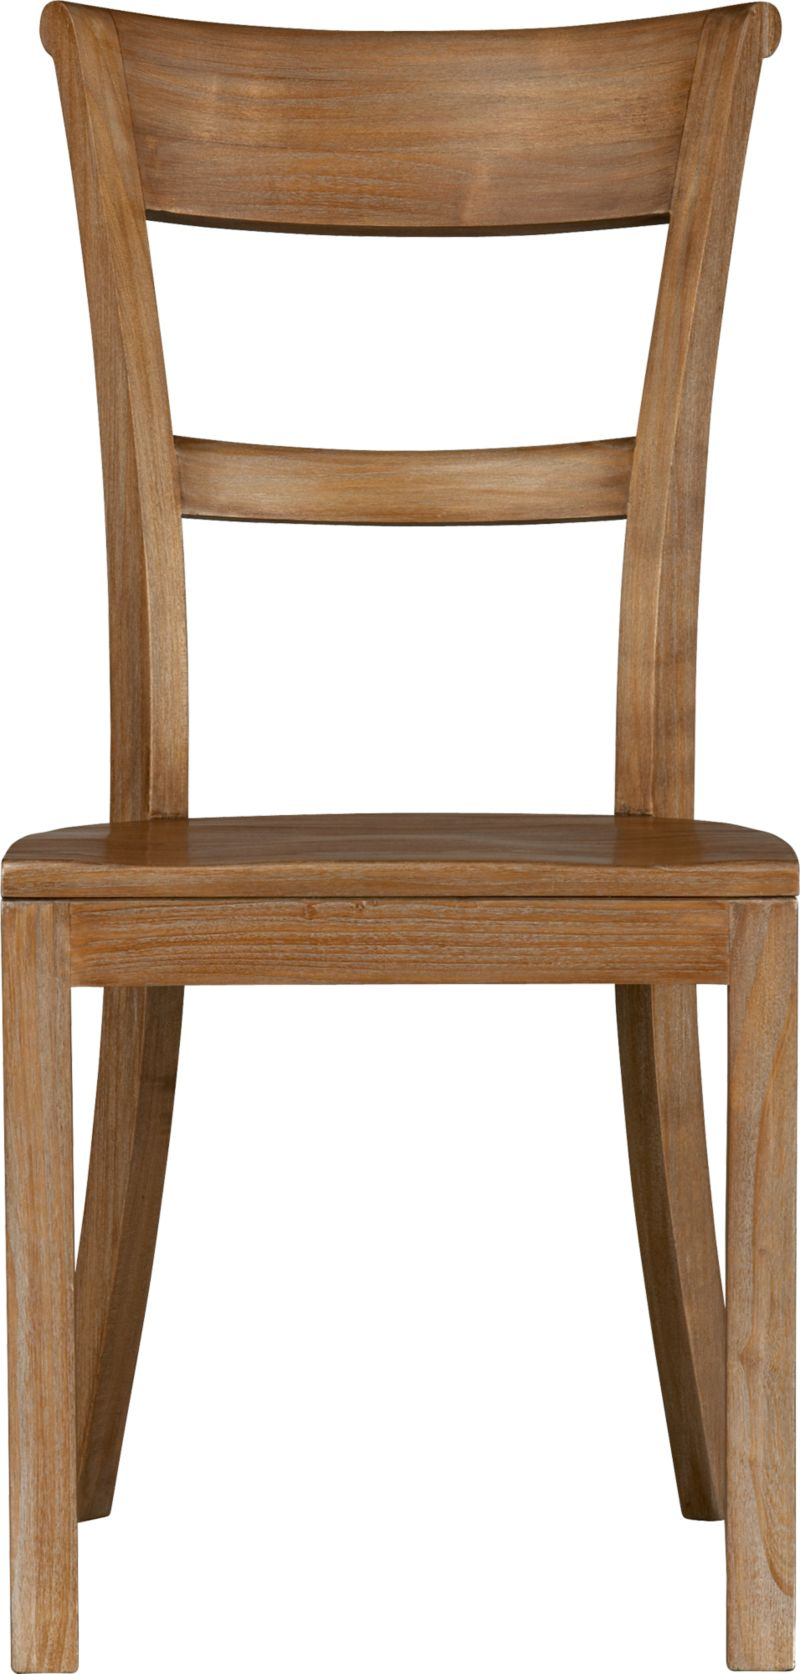 Graceful lines with the beauty and integrity of richly grained solid tropical sungkai wood<br />sit well at our Kipling table. Chair back has a deep, comfortable curve and is gently scrolled. A soft-sheen lacquer adds a finishing detail.<br /><br /><NEWTAG/><ul><li>Solid tropical sungkai wood</li><li>Grey wash, clear protective lacquer finish</li><li>Contoured seat</li><li>Made in Indonesia</li></ul>